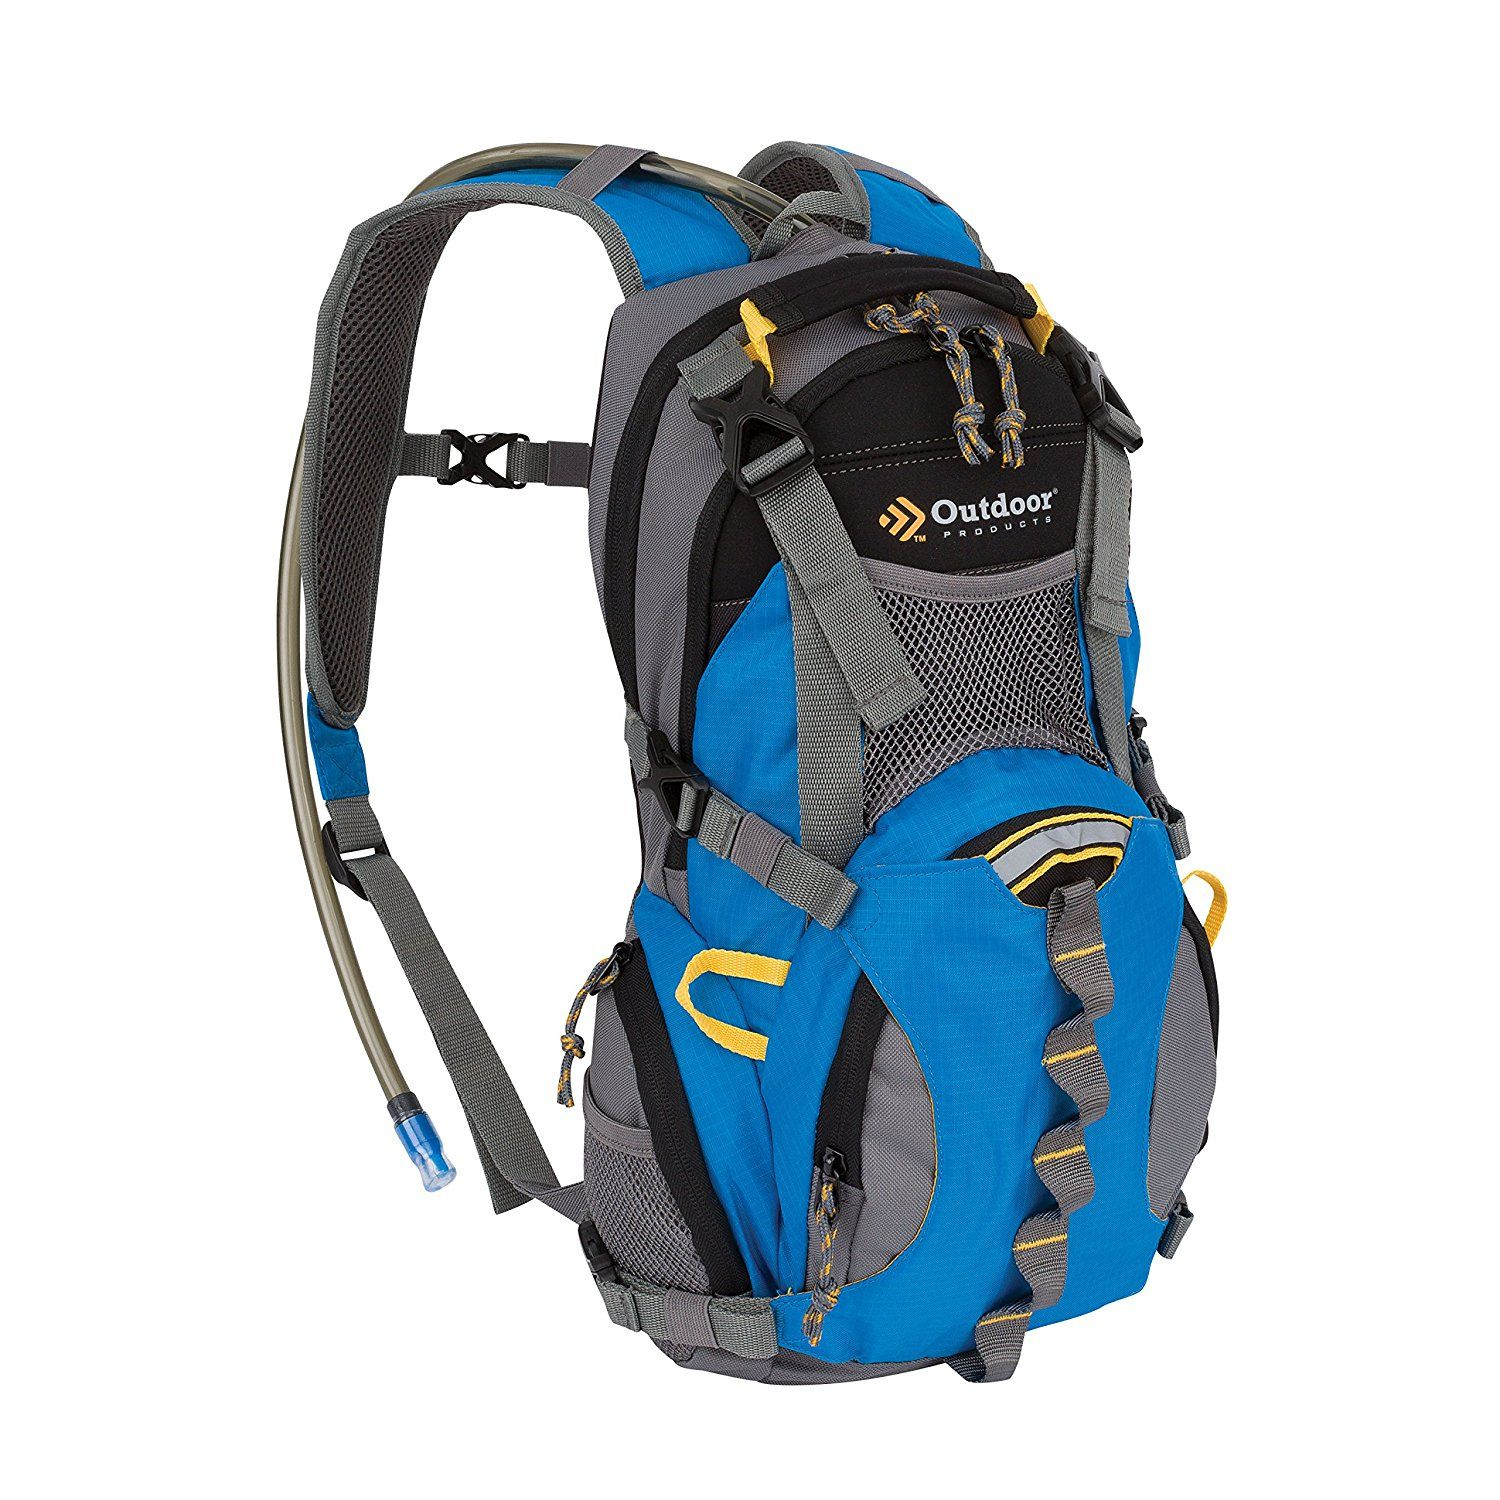 Outdoor Products Freefall Hydration Pack    Tried it! Love it! Click the  image.   Hiking backpack cffbafa8773aa